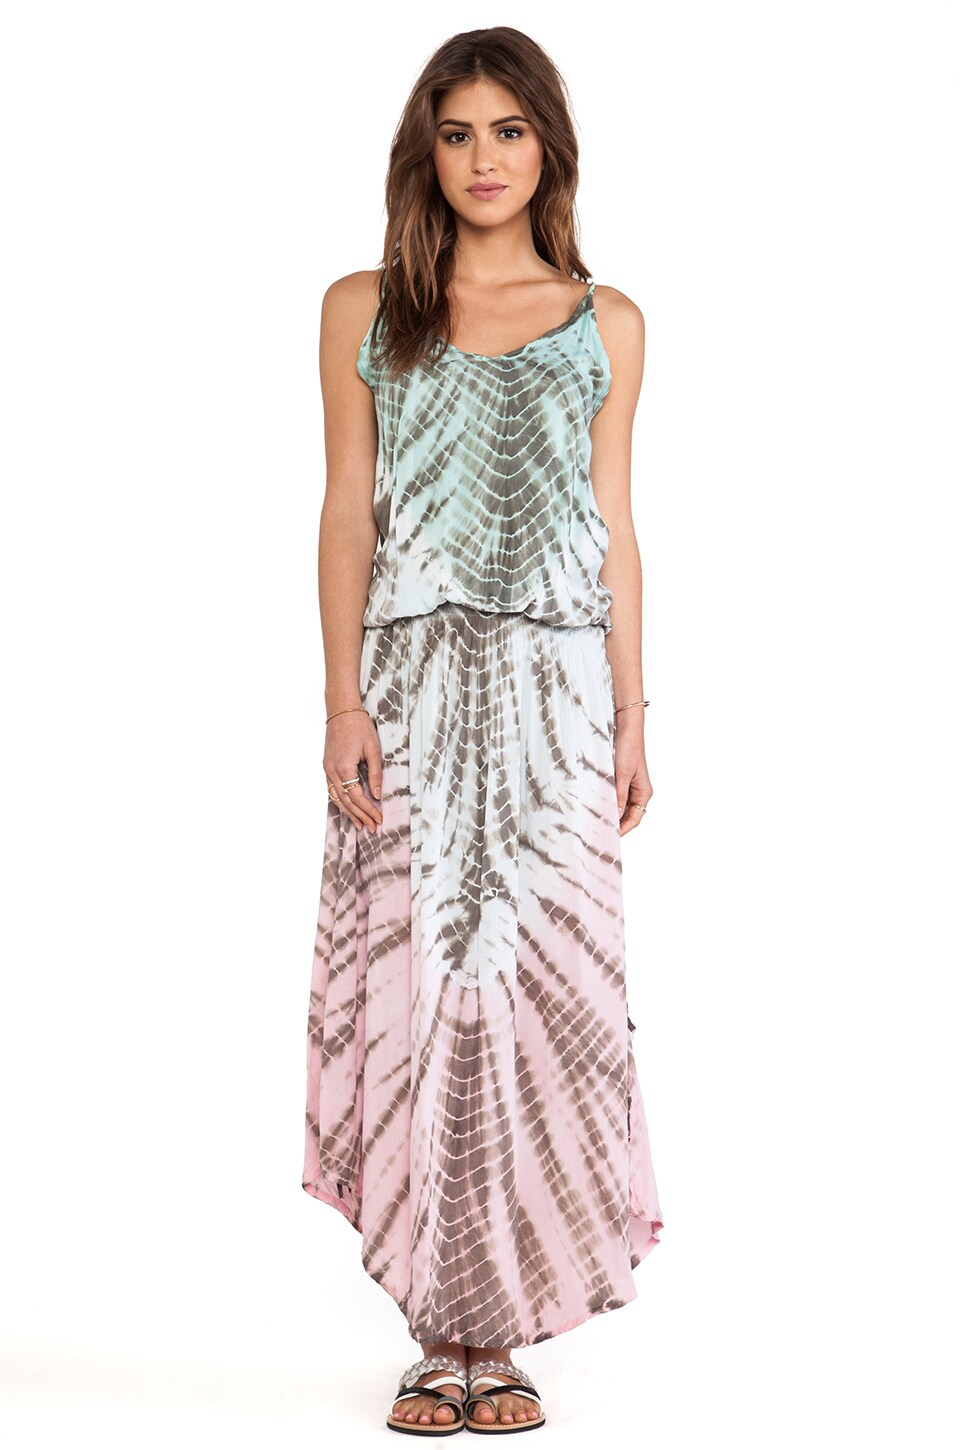 Tiare Hawaii Copacabana Printed Maxi Dress in Teal & Grey & Blue Vibe